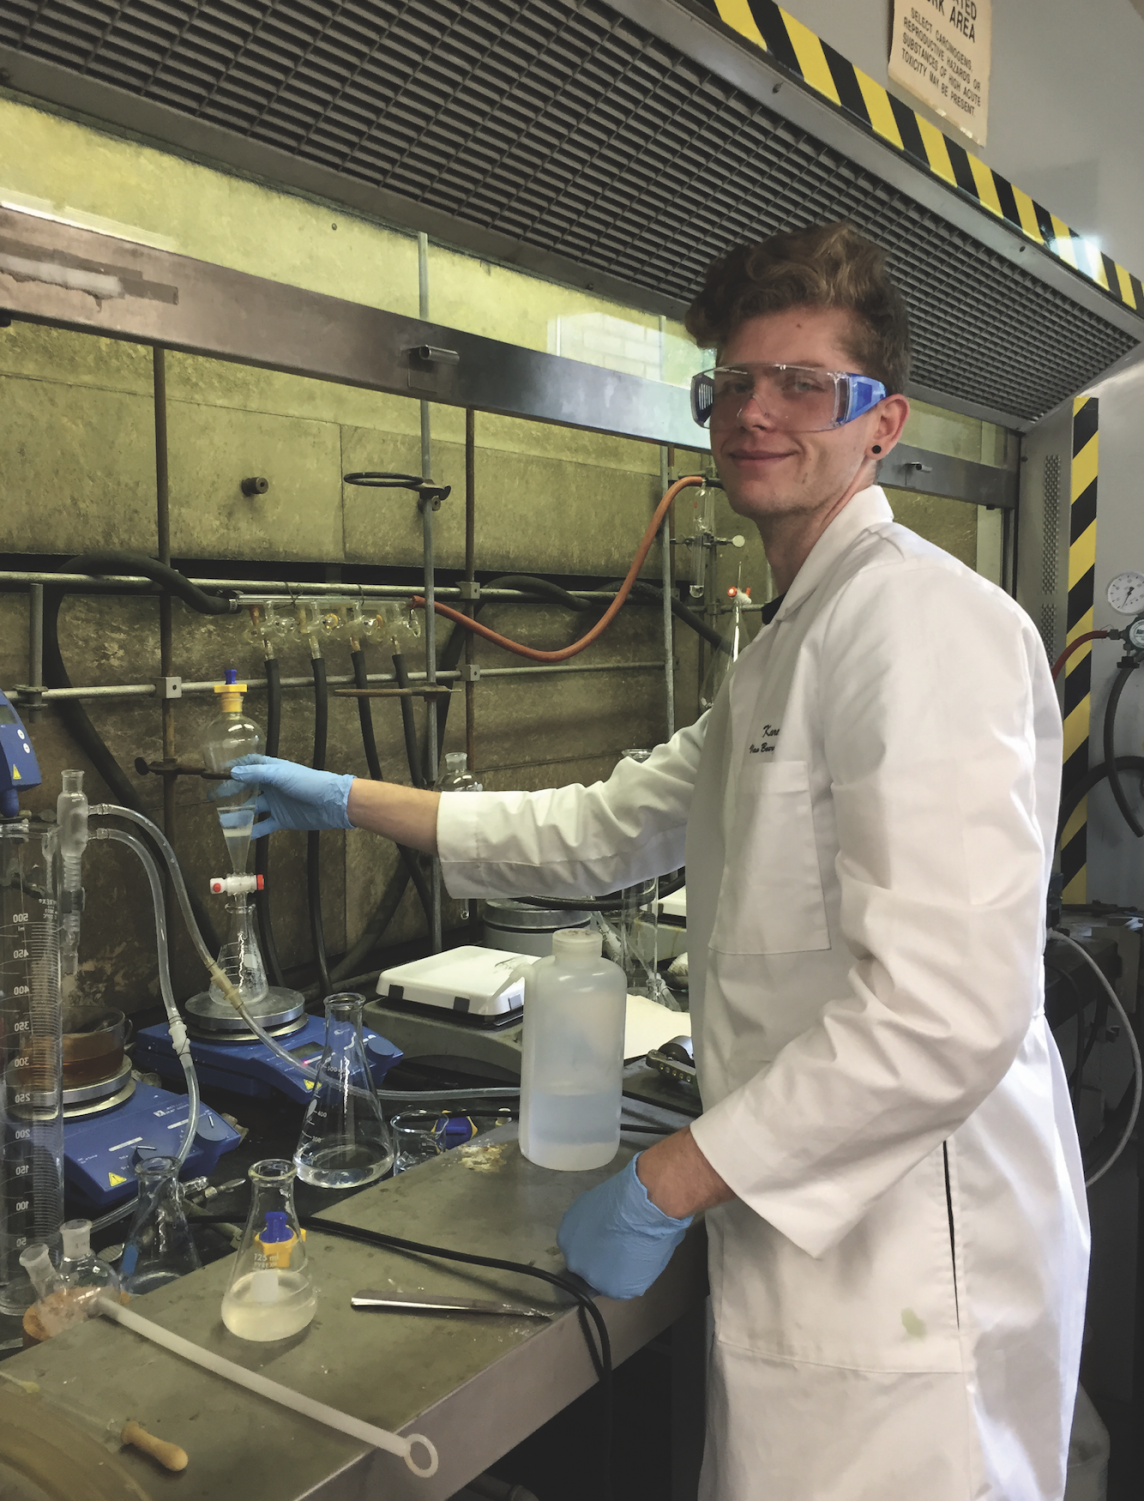 Karel Van Bourgondien, FCLC '21, working on an anti-Hepatitis C agent in a chemistry lab in John Mulcahy Hall at Rose Hill.